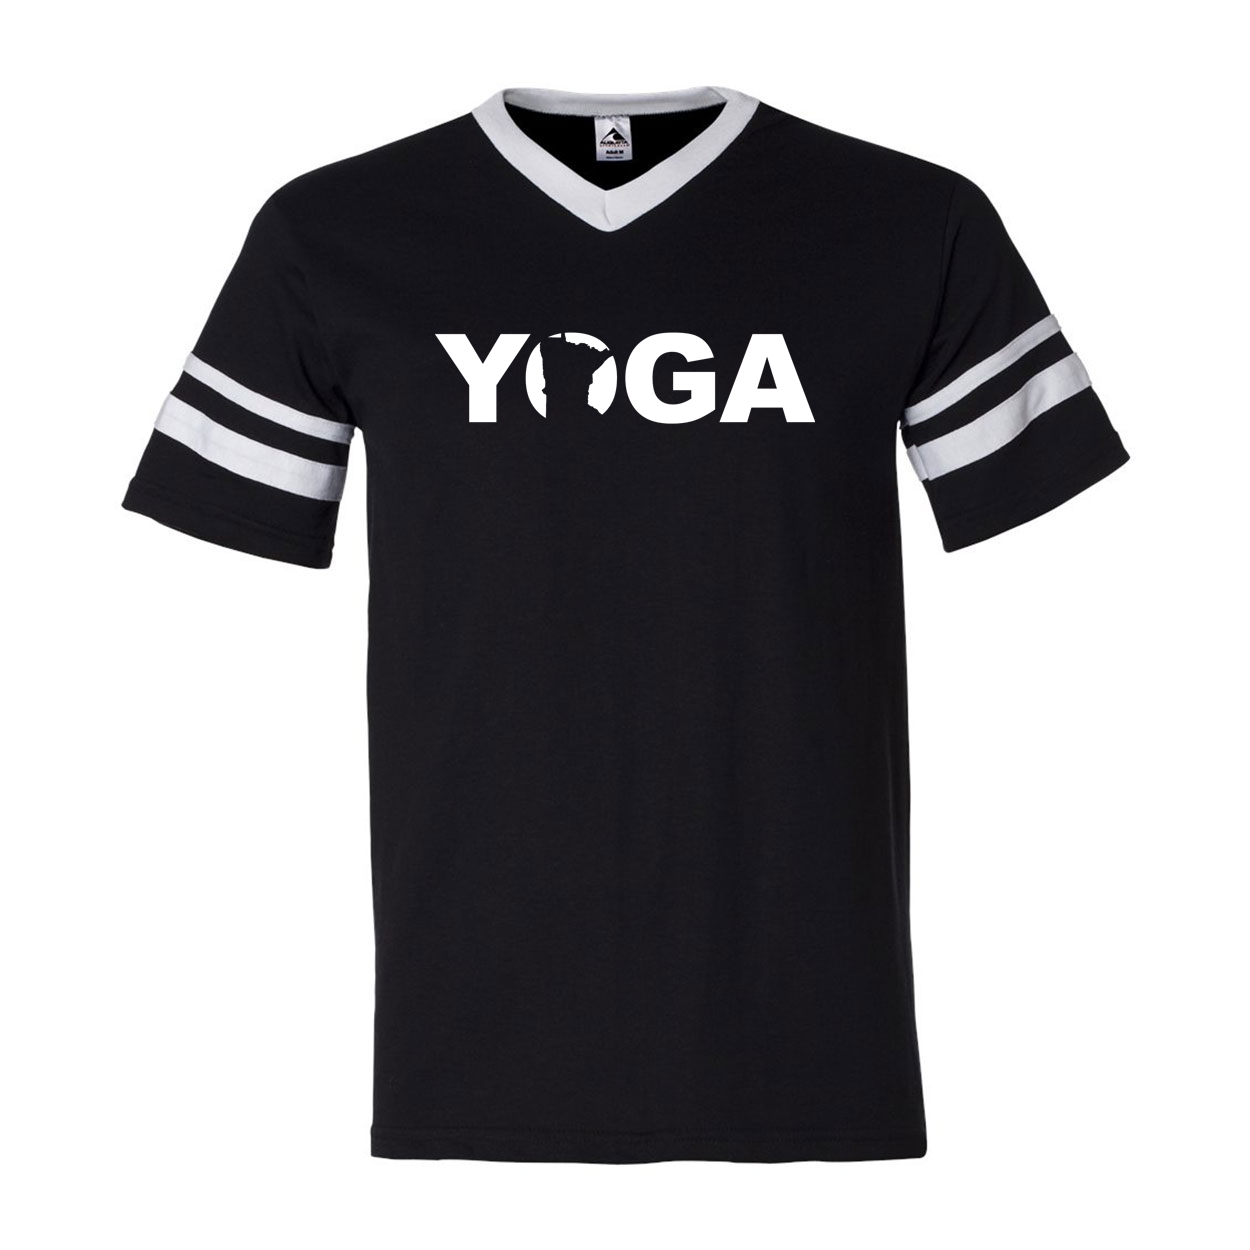 Yoga Minnesota Classic Premium Striped Jersey T-Shirt Black/White (White Logo)